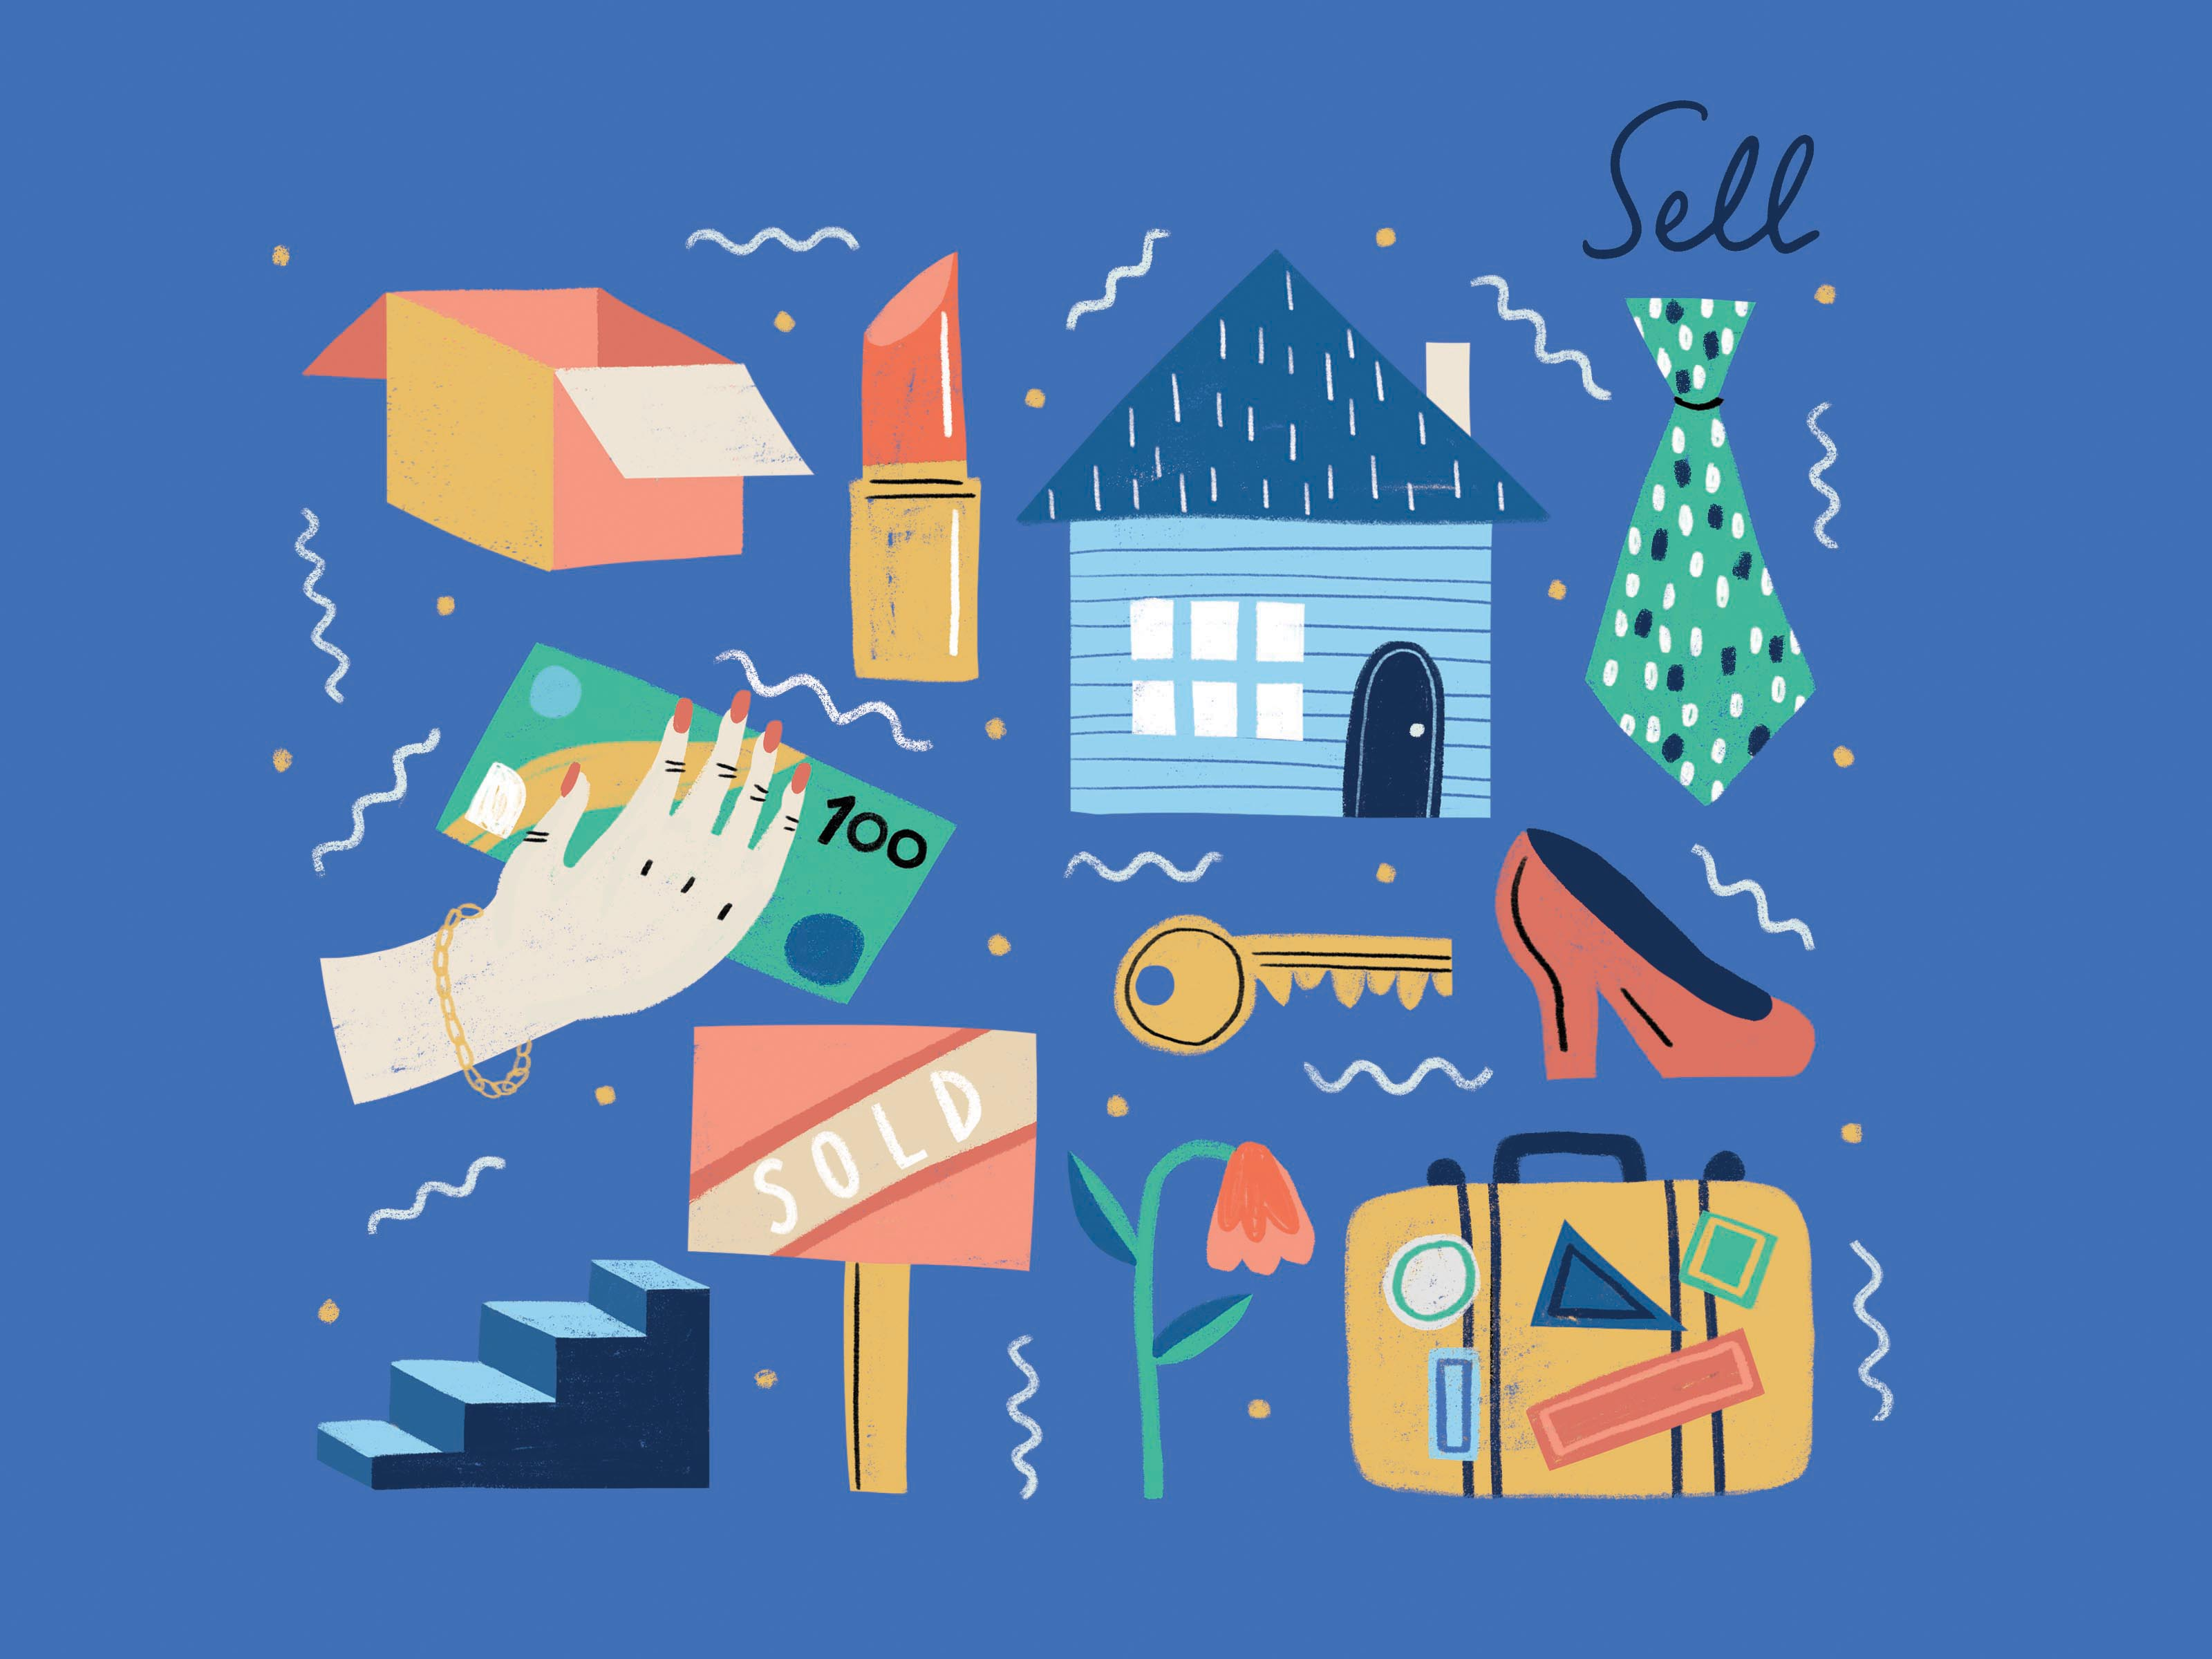 Texta-style illustration of packing boxes, lipstick, a house, tie, a hand holding money, a 'sold' sign, a suitcase covered in stickers, a high-heeled shoe, a key, a staircase and the word 'sell'